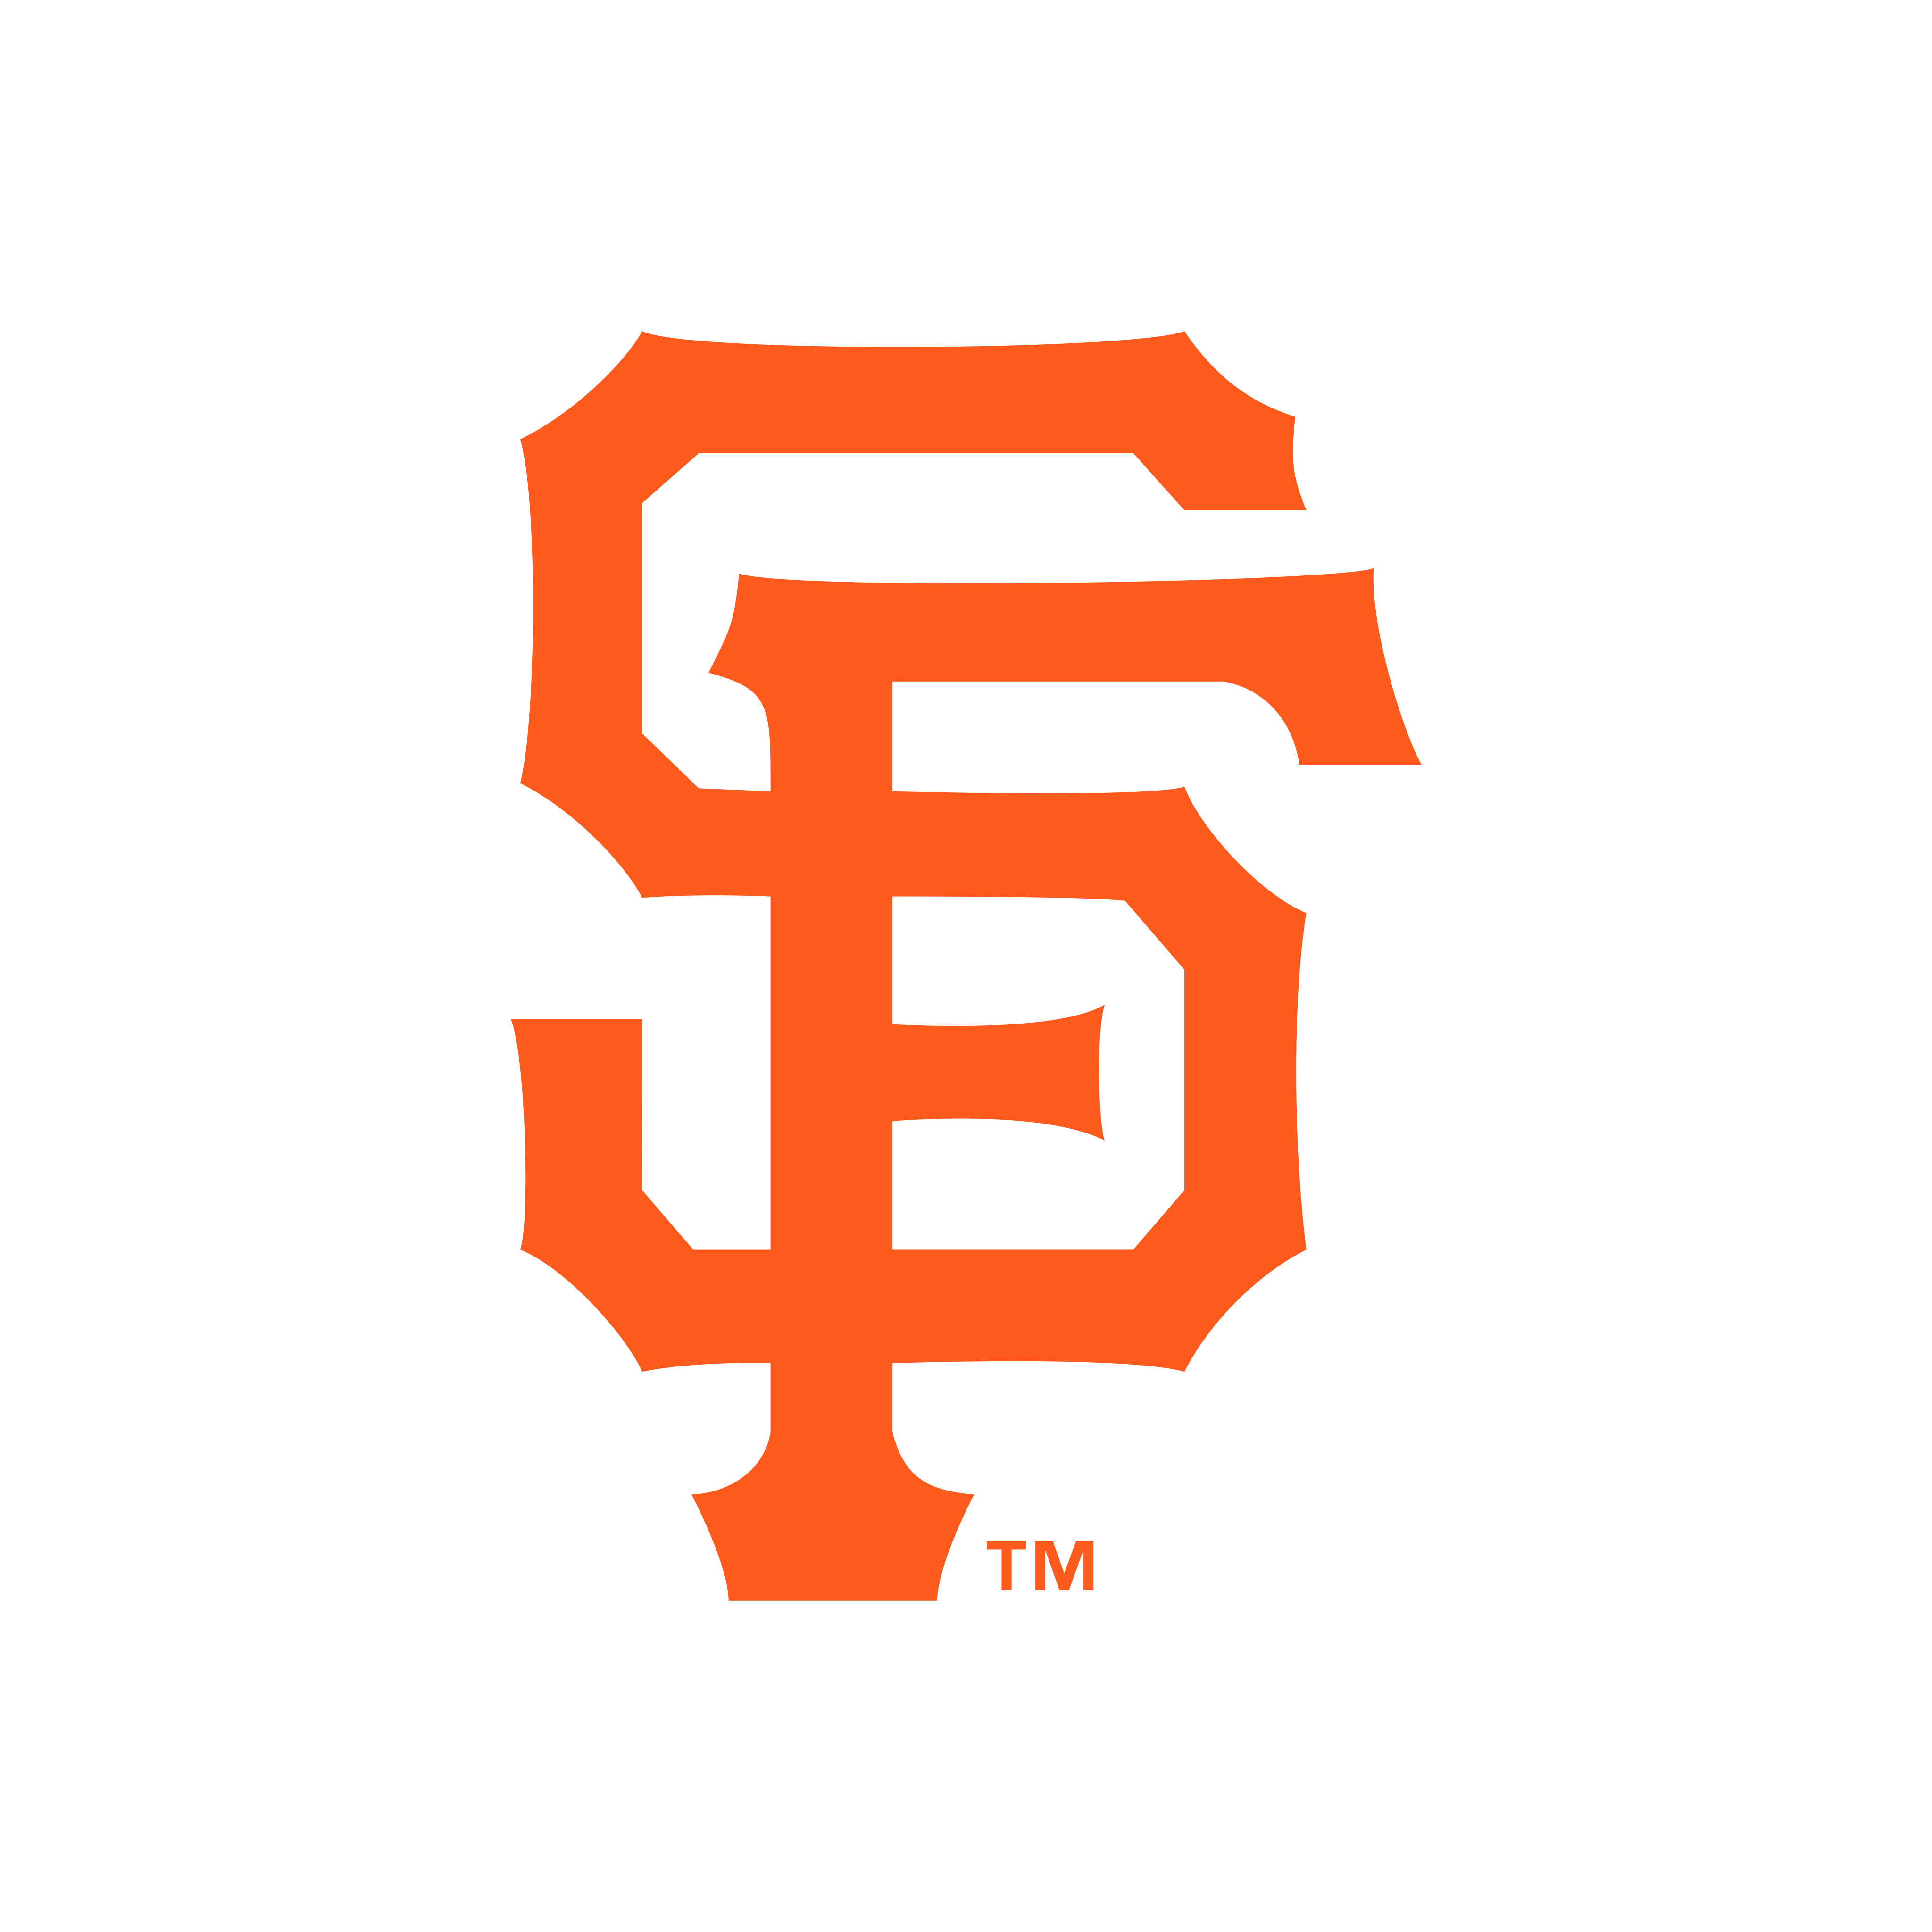 san francisco giants logo 0 - San Francisco Giants Logo